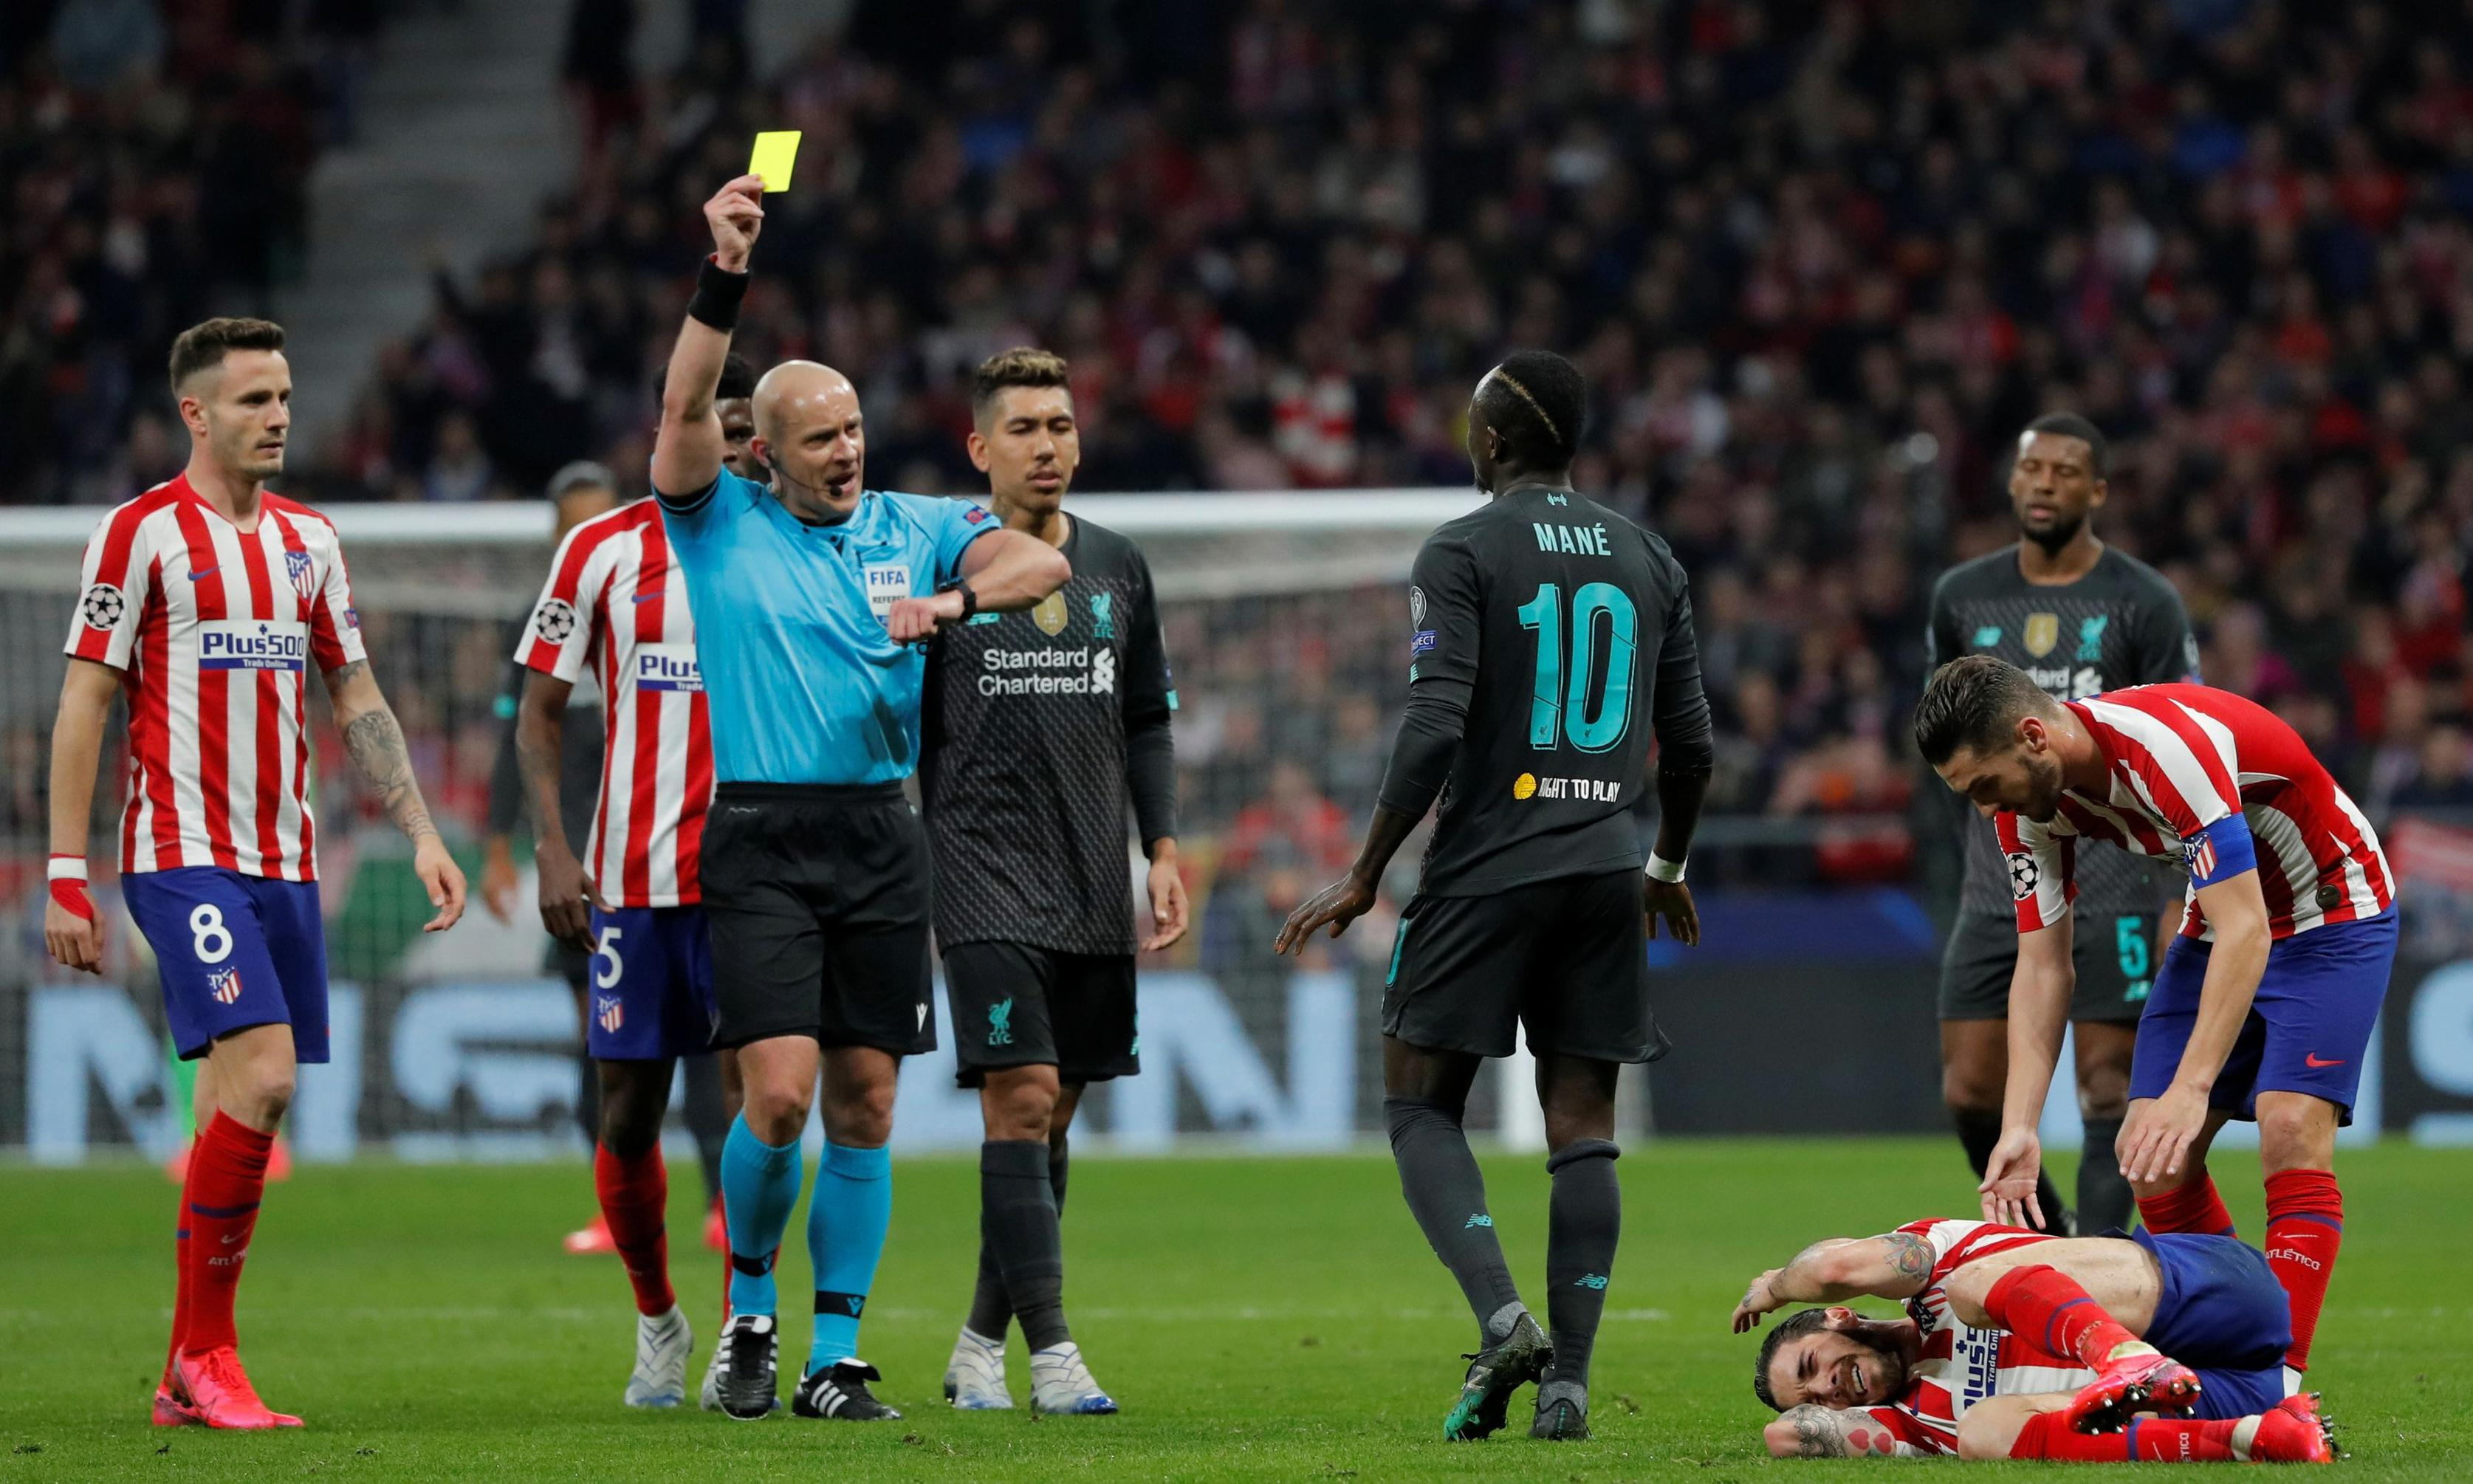 Liverpool's Klopp right to take Mané off amid Atlético antics, Gomez says